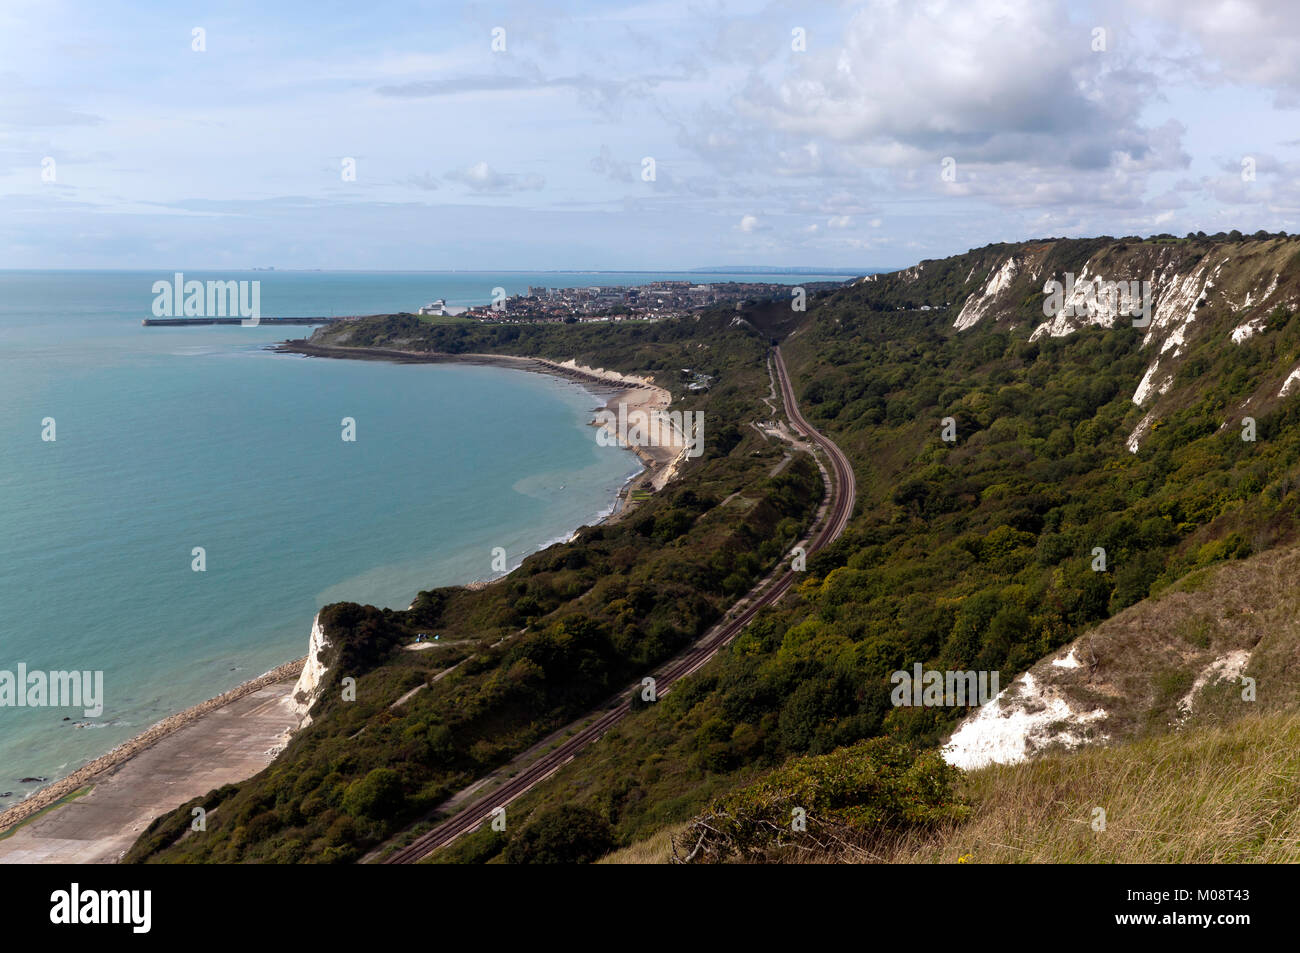 cliff-top-view-taken-from-capel-le-ferne-looking-towards-the-town-M08T43.jpg